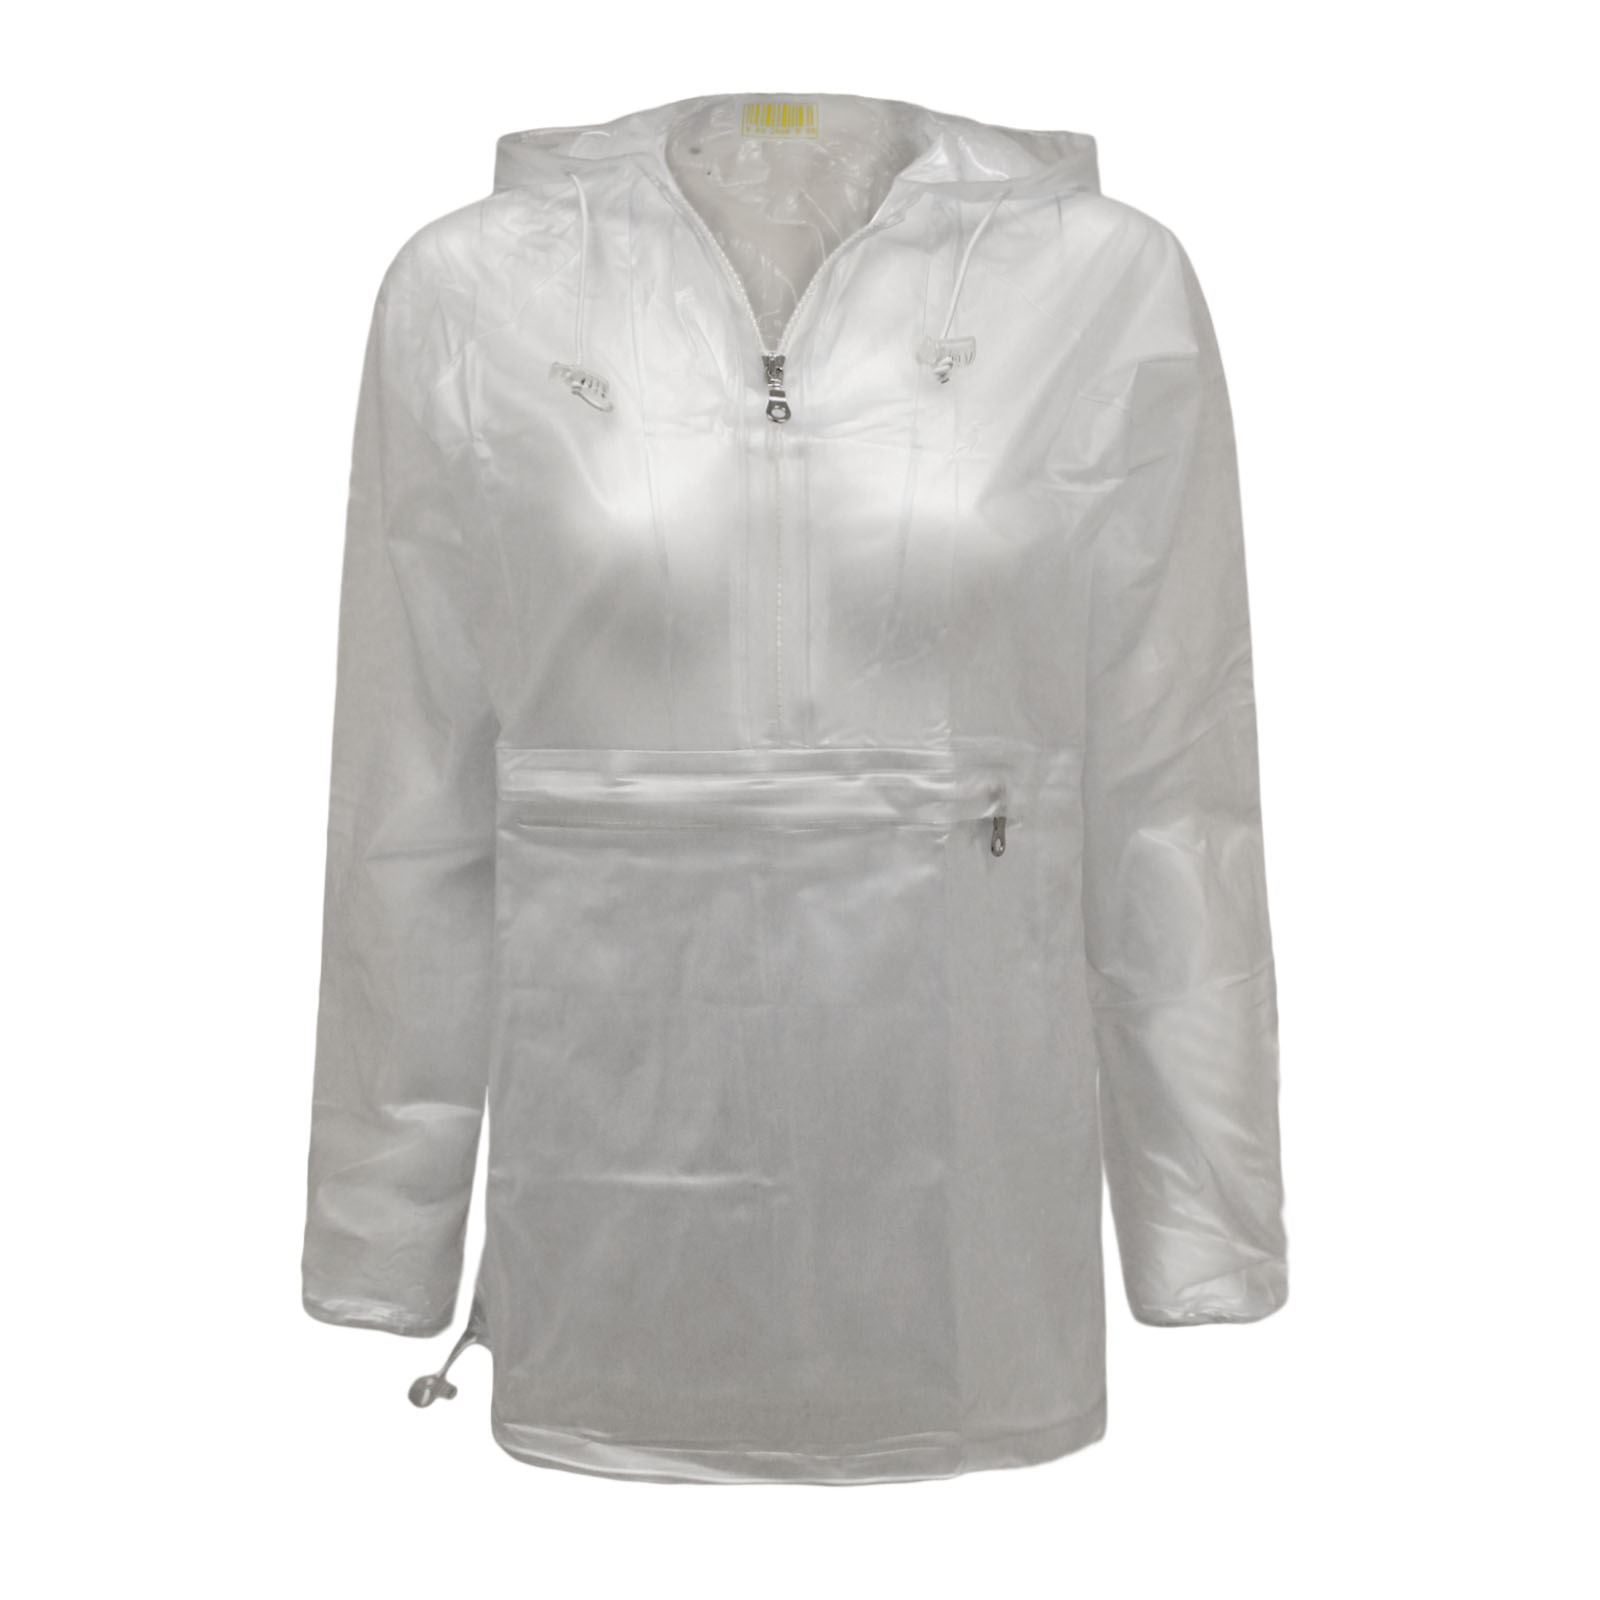 Find great deals on eBay for womens lightweight raincoat. Shop with confidence.